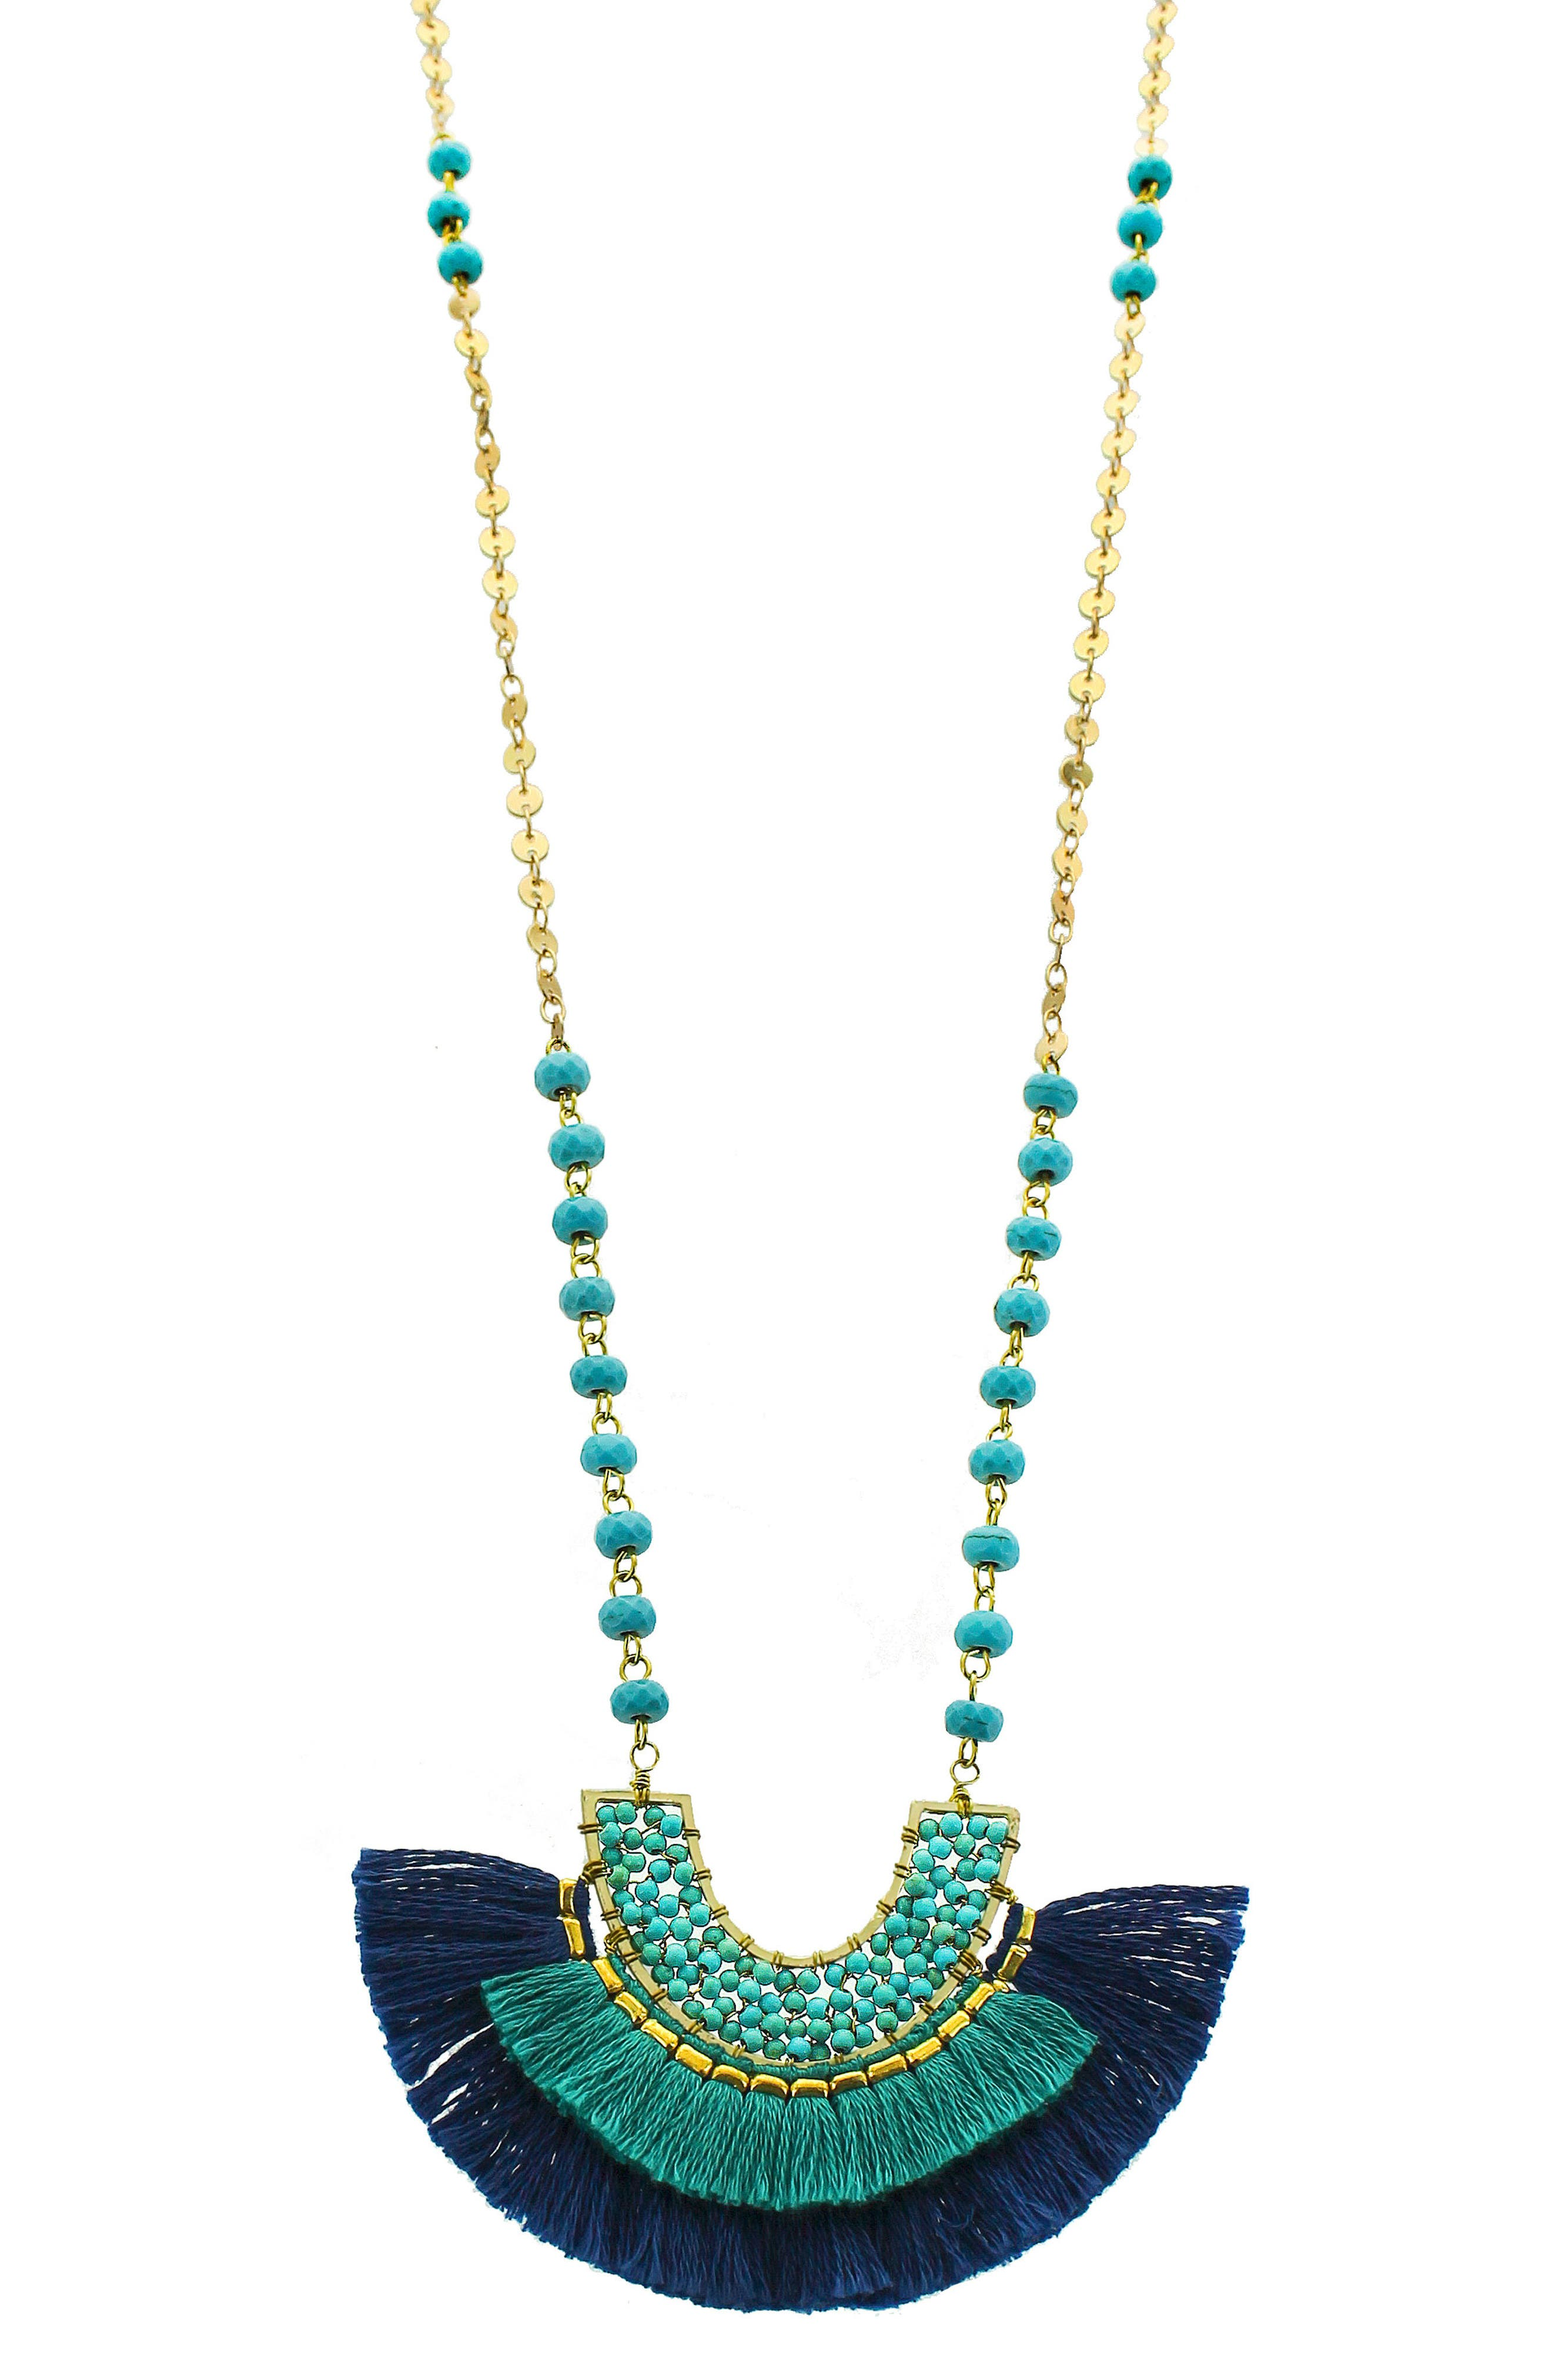 Fringe Pendant Necklace,                             Main thumbnail 1, color,                             NAVY/ TEAL